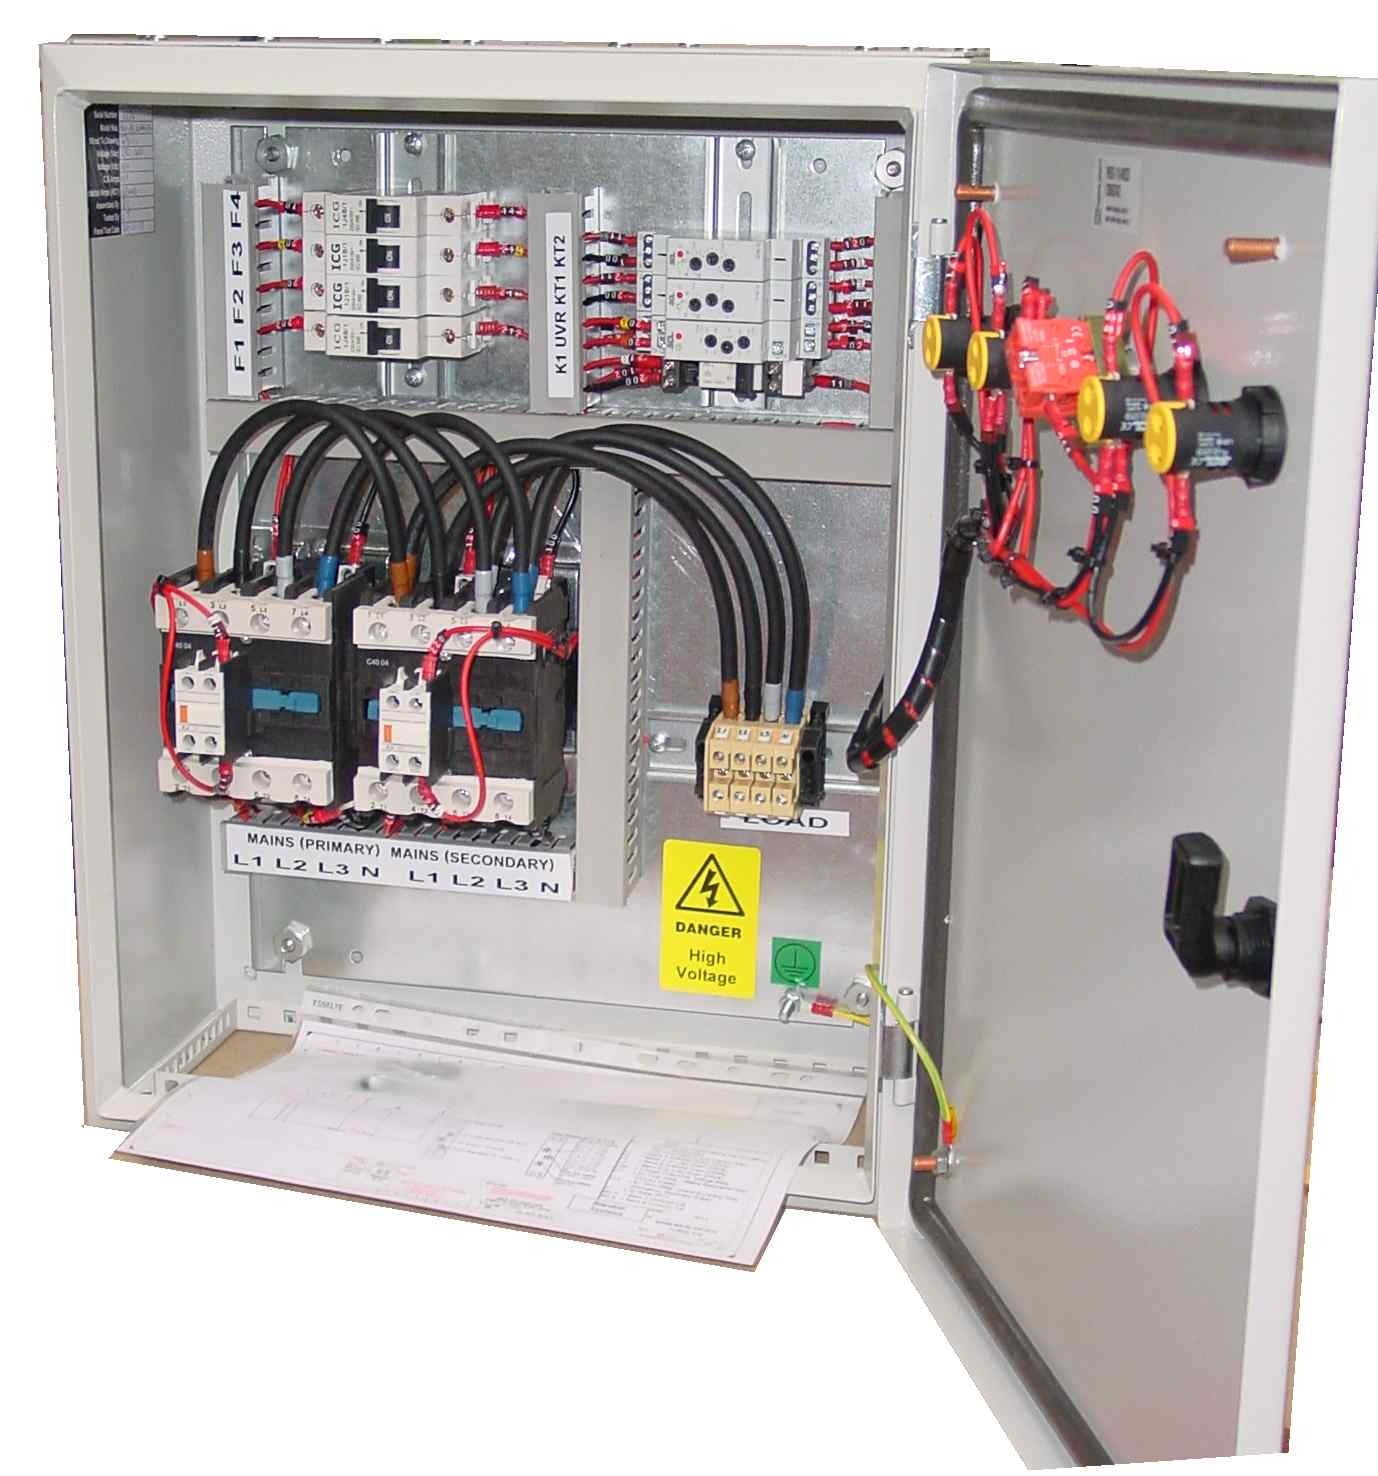 Double Pole Switch Wiring Diagram likewise 60508 in addition Heat Ventilation And Air Conditioning System as well Crossfire 150r Wiring Diagram further GR24PIN. on mechanical relay wiring diagram